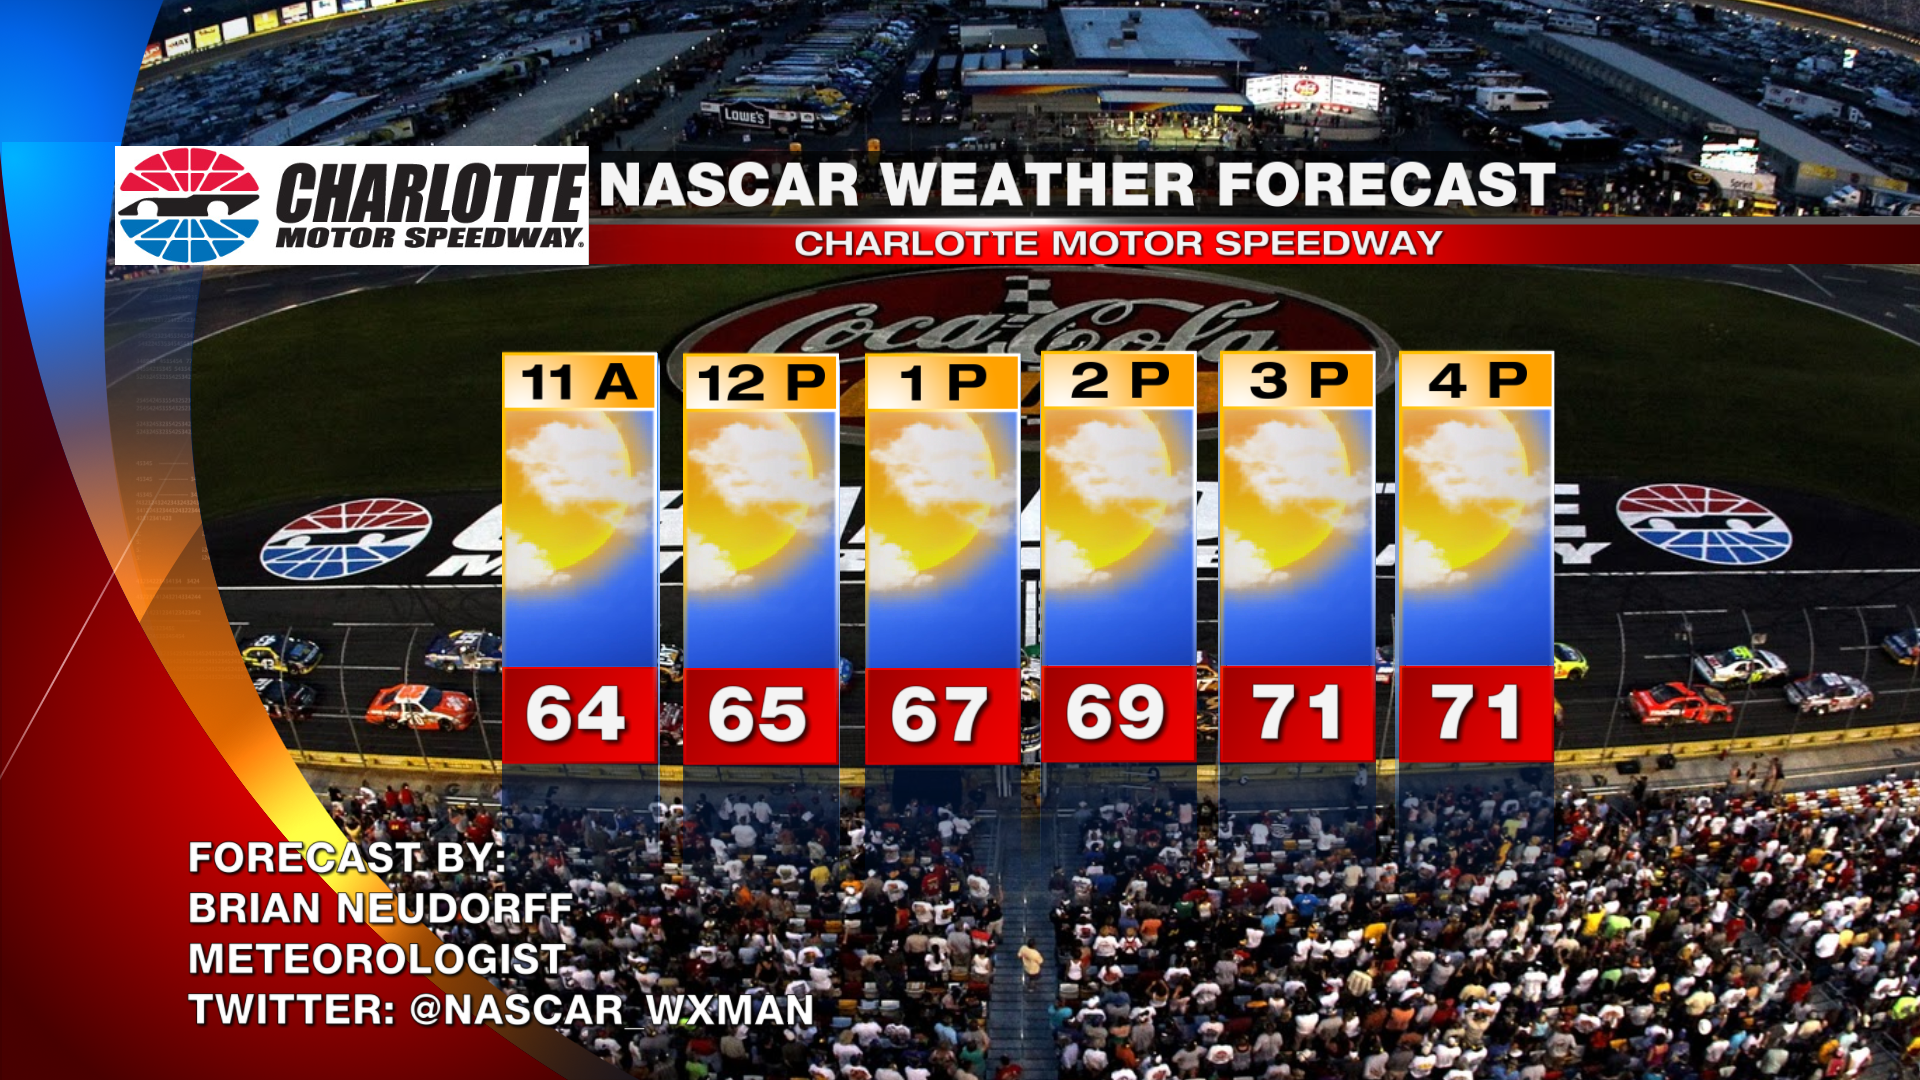 NASCAR Race day weather for Charlotte Motor Speedway: We try it again